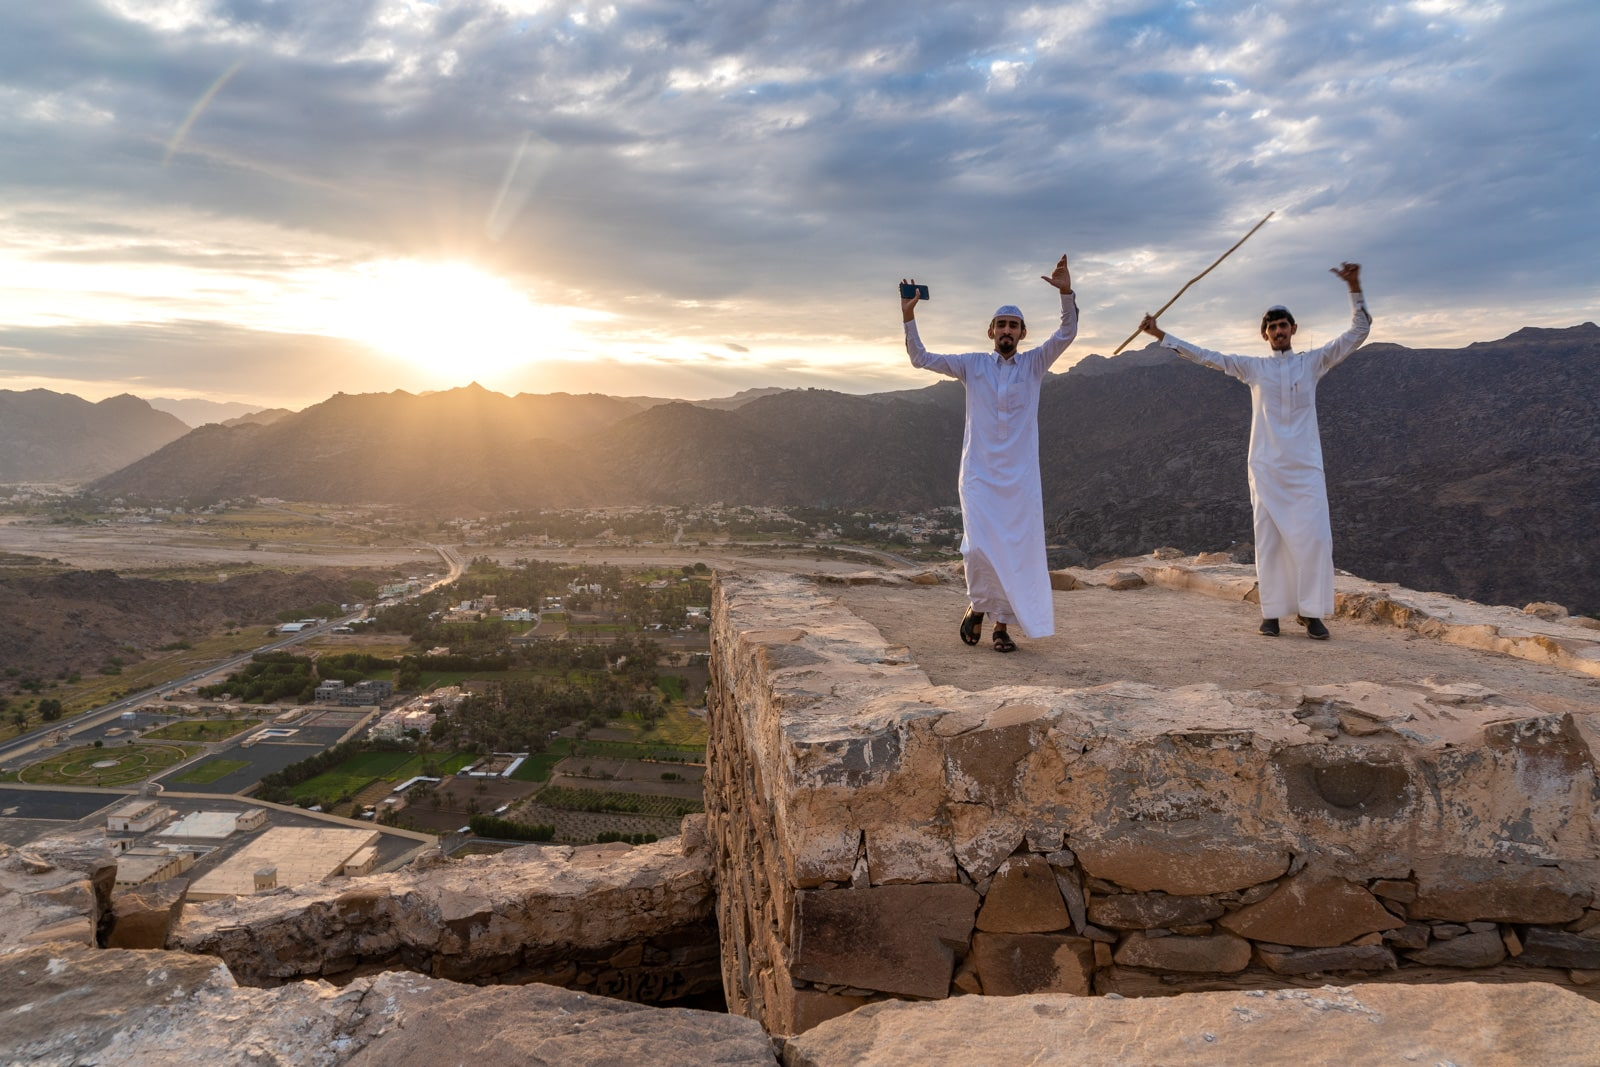 Saudi boys dancing during sunset in Najran, Saudi Arabia